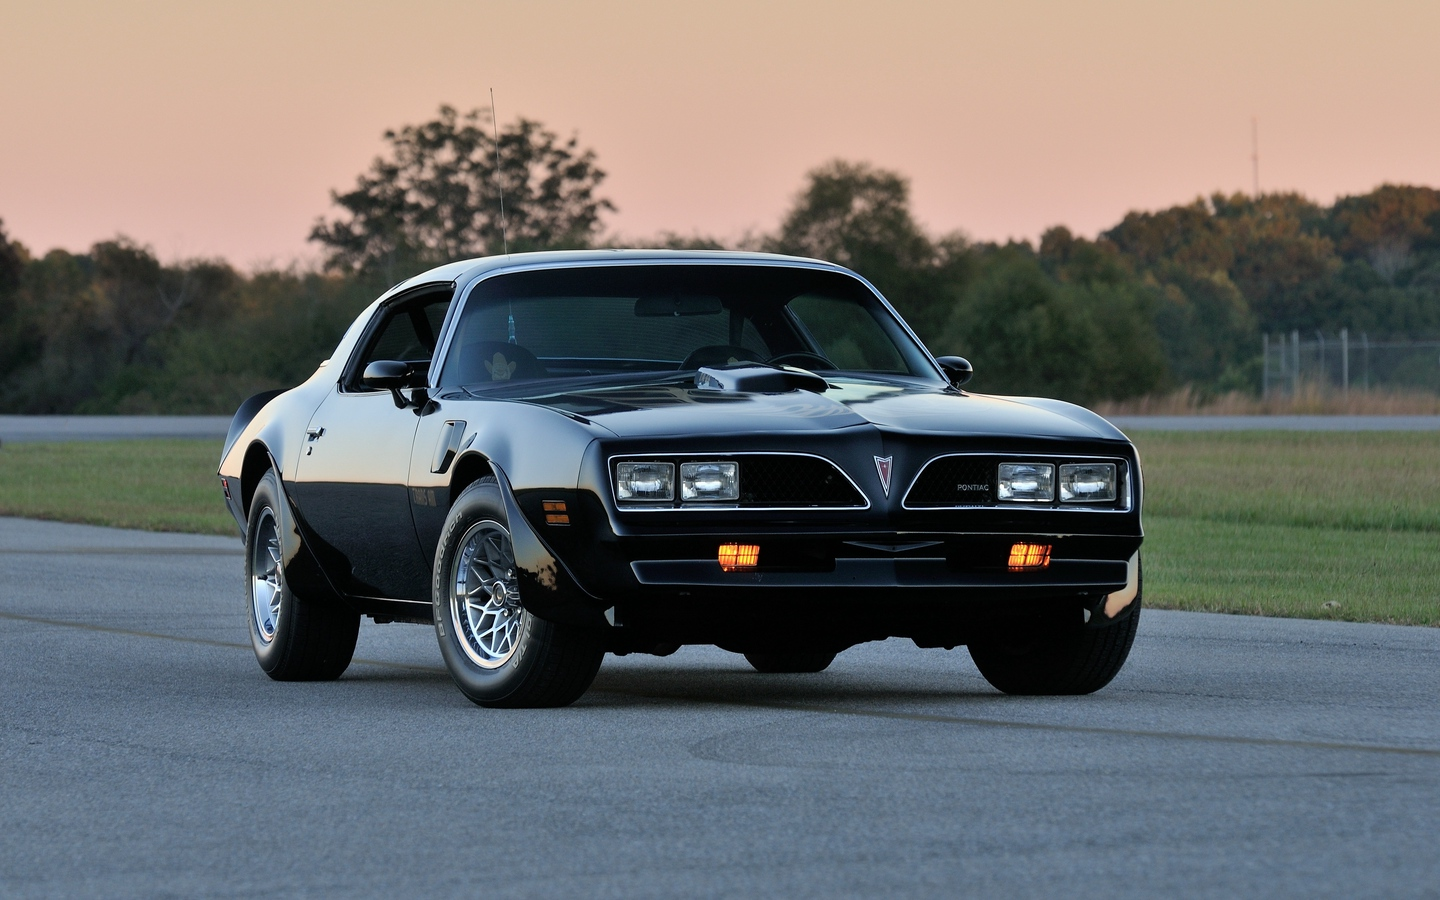 Download wallpaper 1440x900 pontiac firebird trans am ws6 1440x900